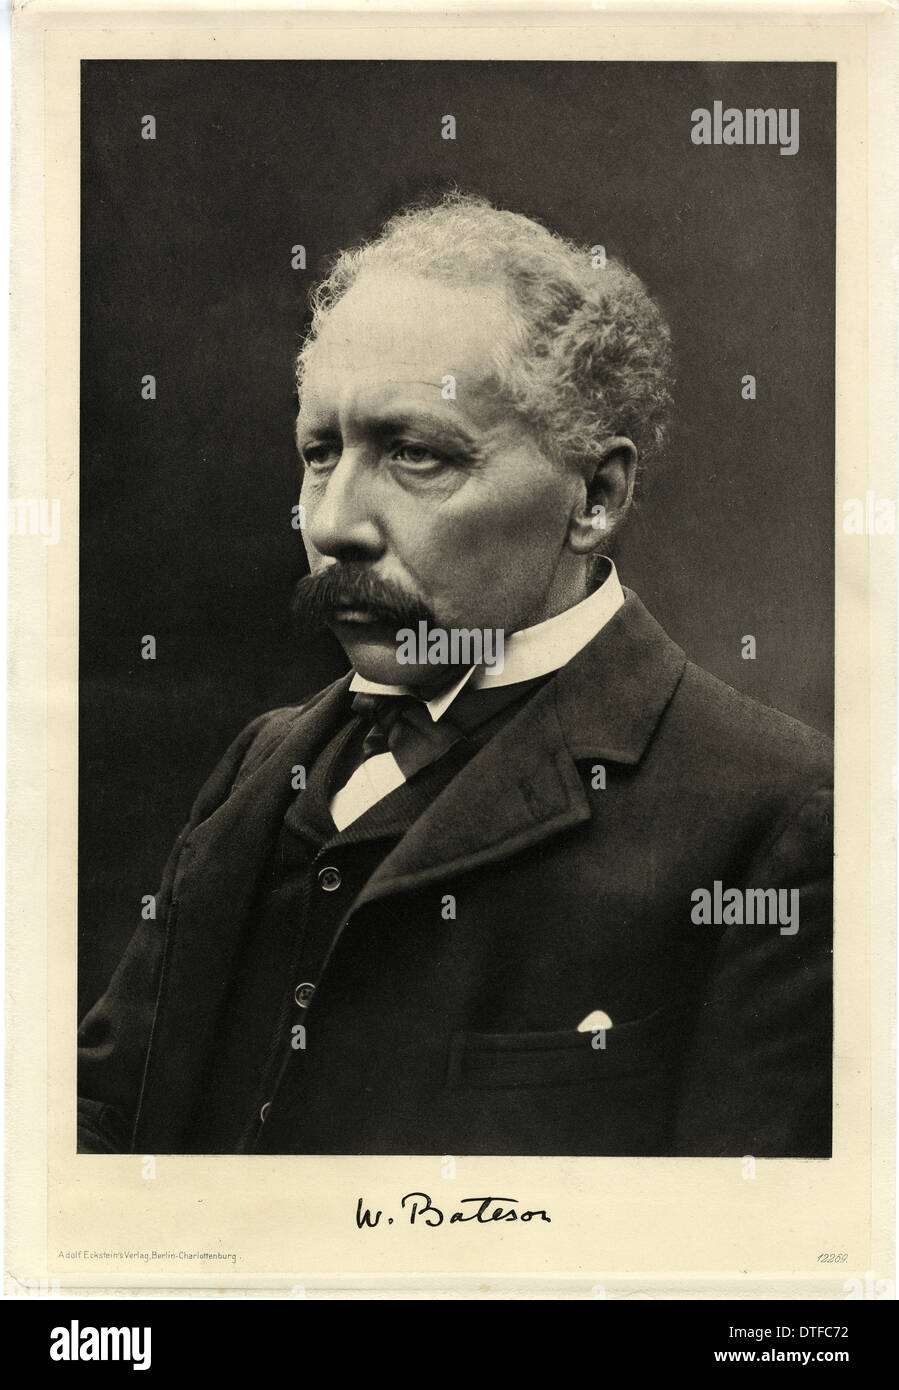 William Bateson (1861-1926) - Stock Image